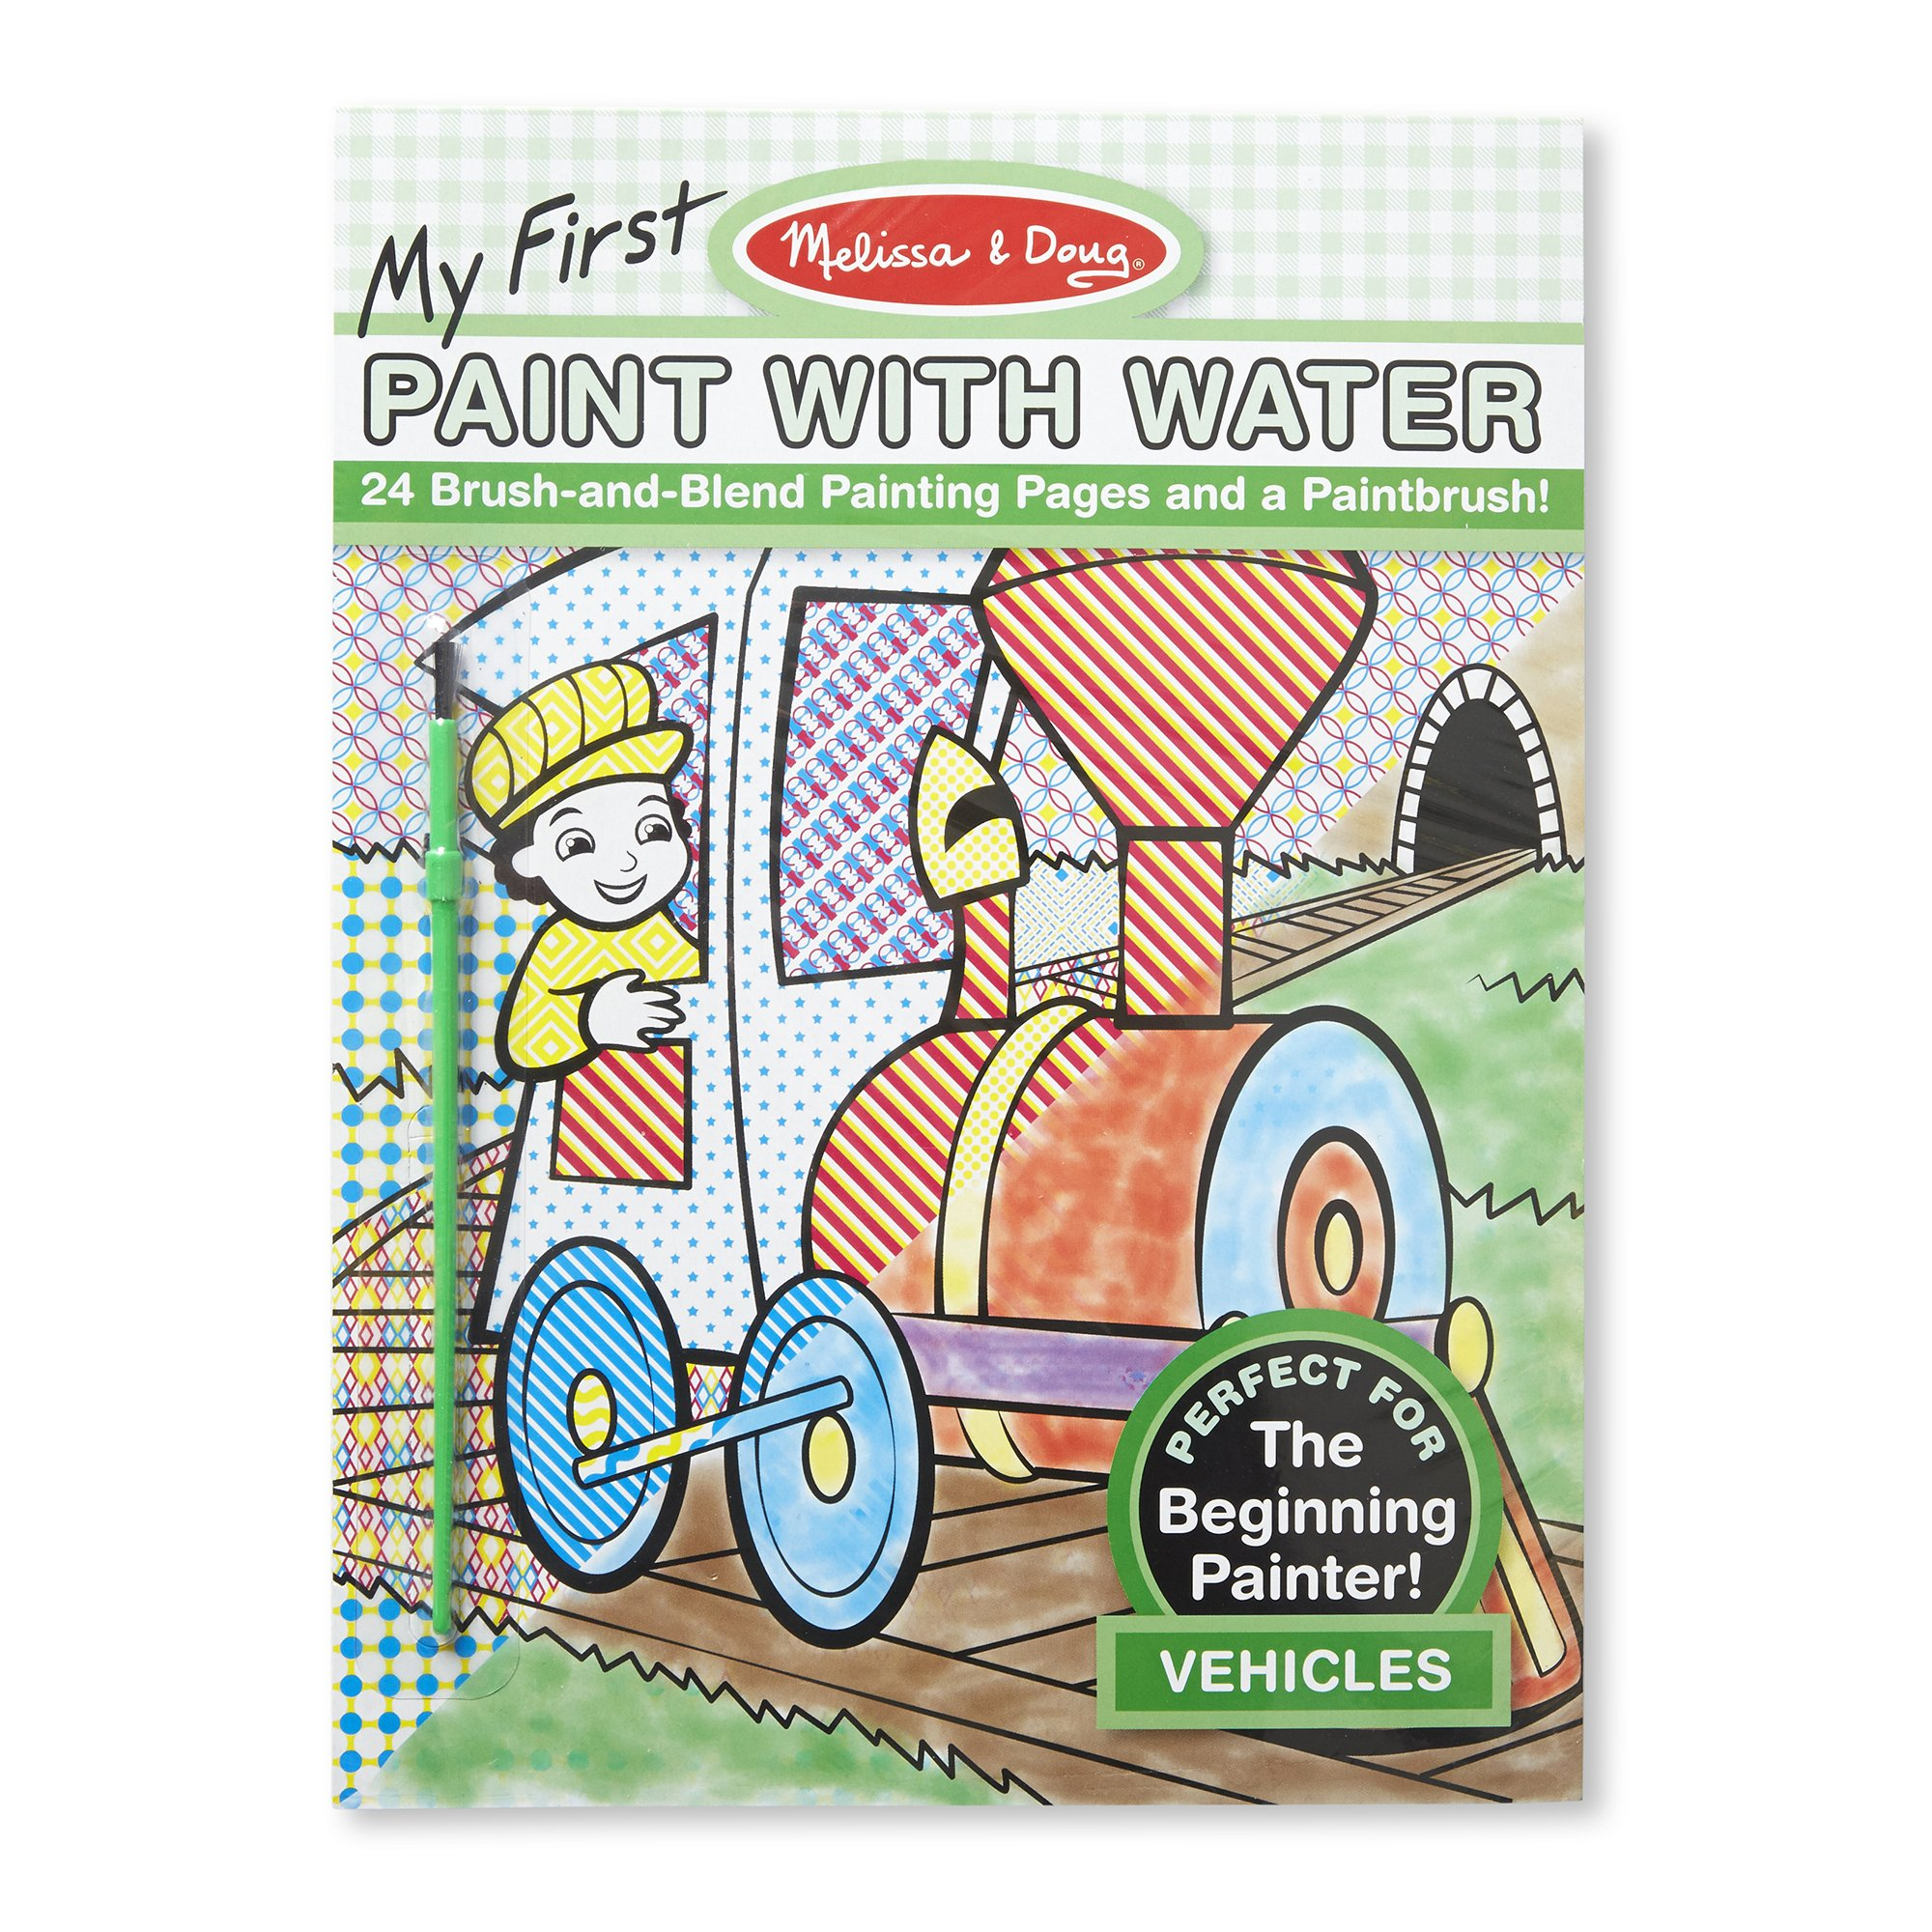 MY FIRST PAINT WITH WATER - VEHICLES